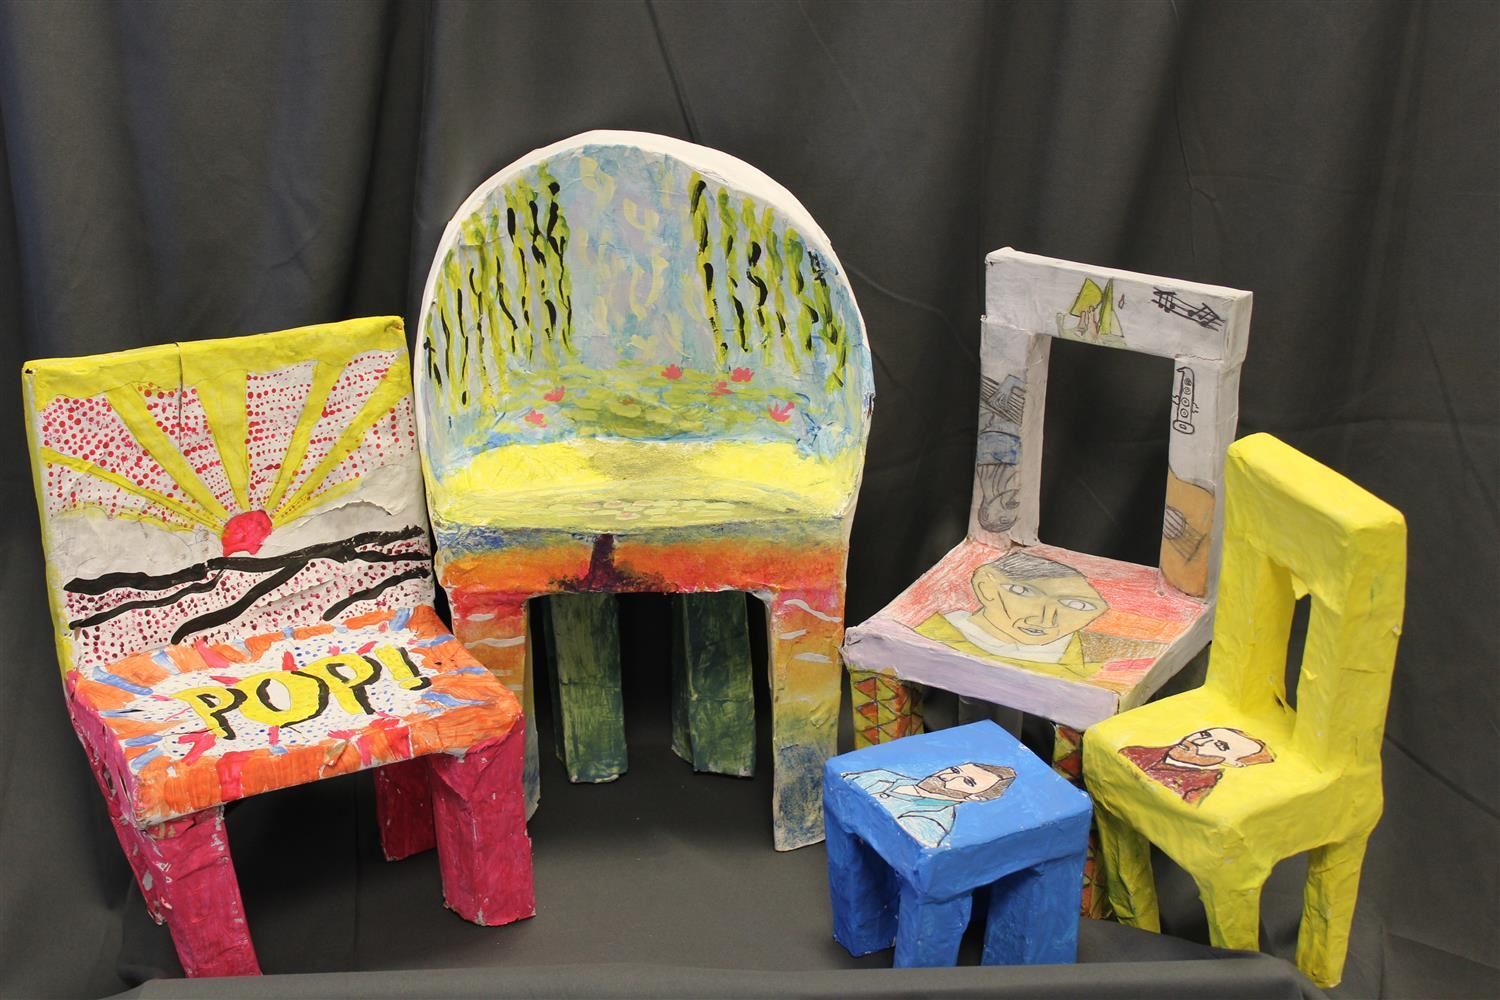 Student Artwork of Chairs